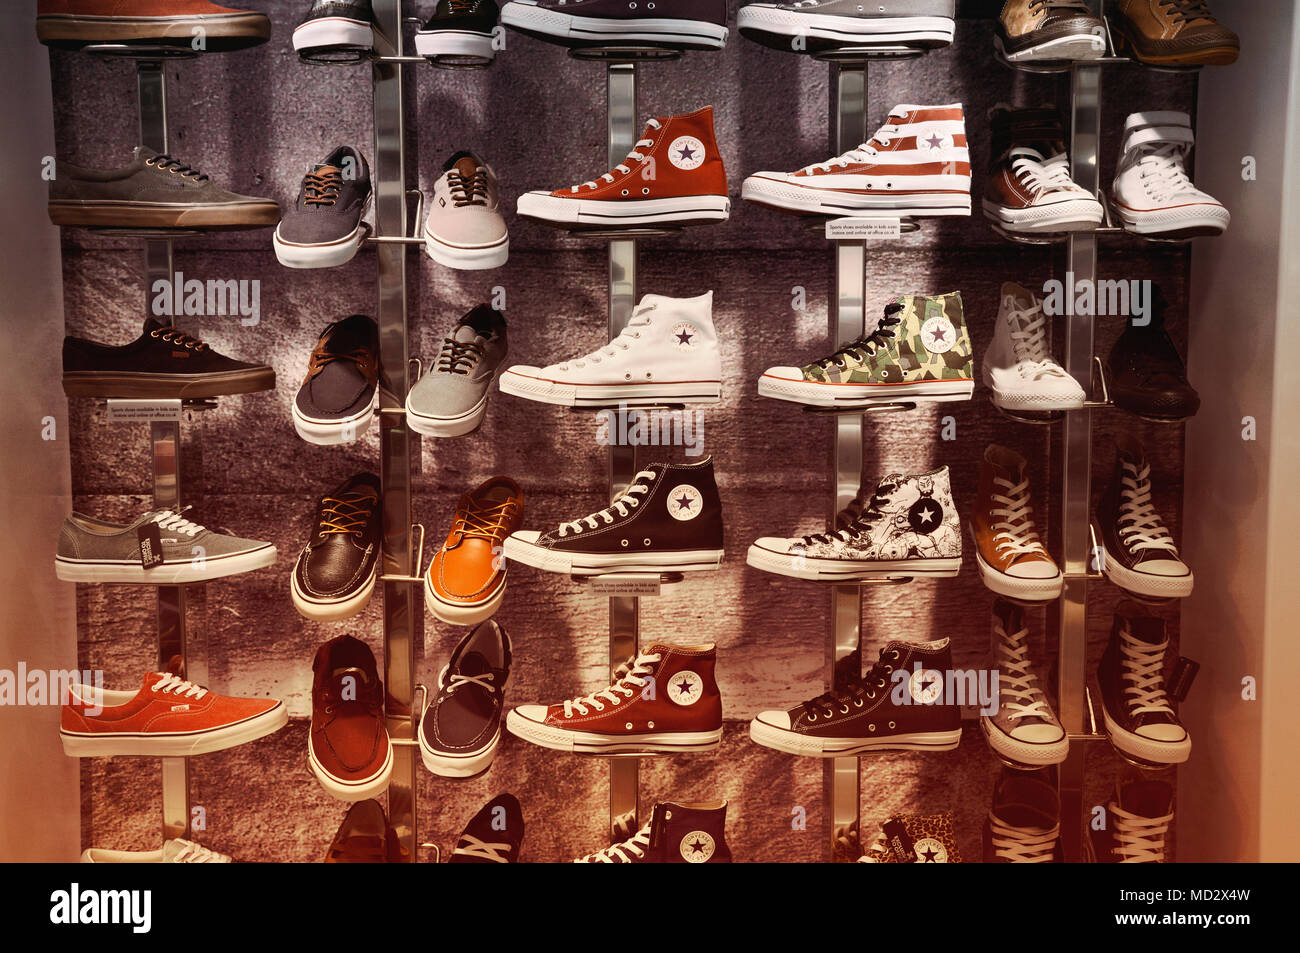 0024a7ae736a Converse trainers and Vans shoes on display - Stock Image